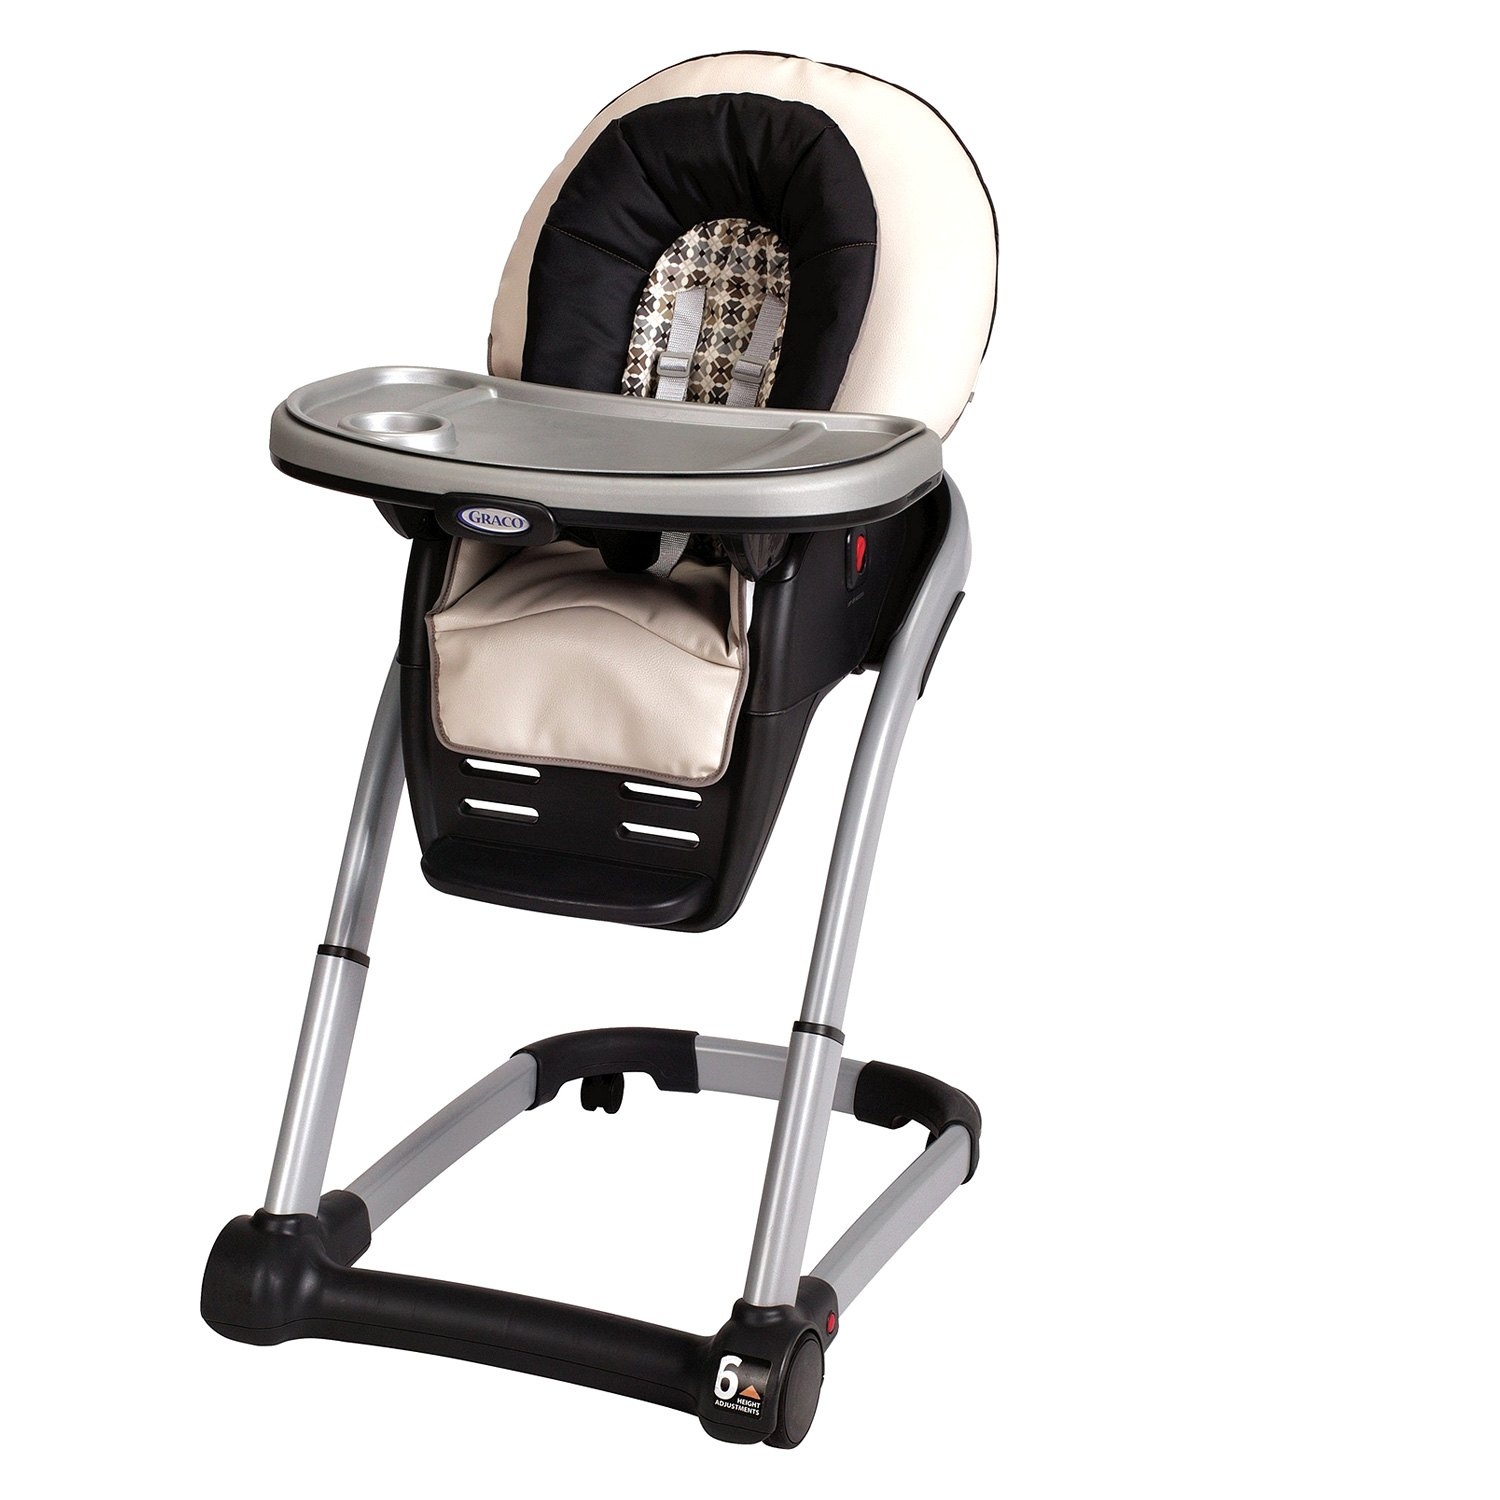 Graco Baby Blossom™ 4 in 1 Seating System